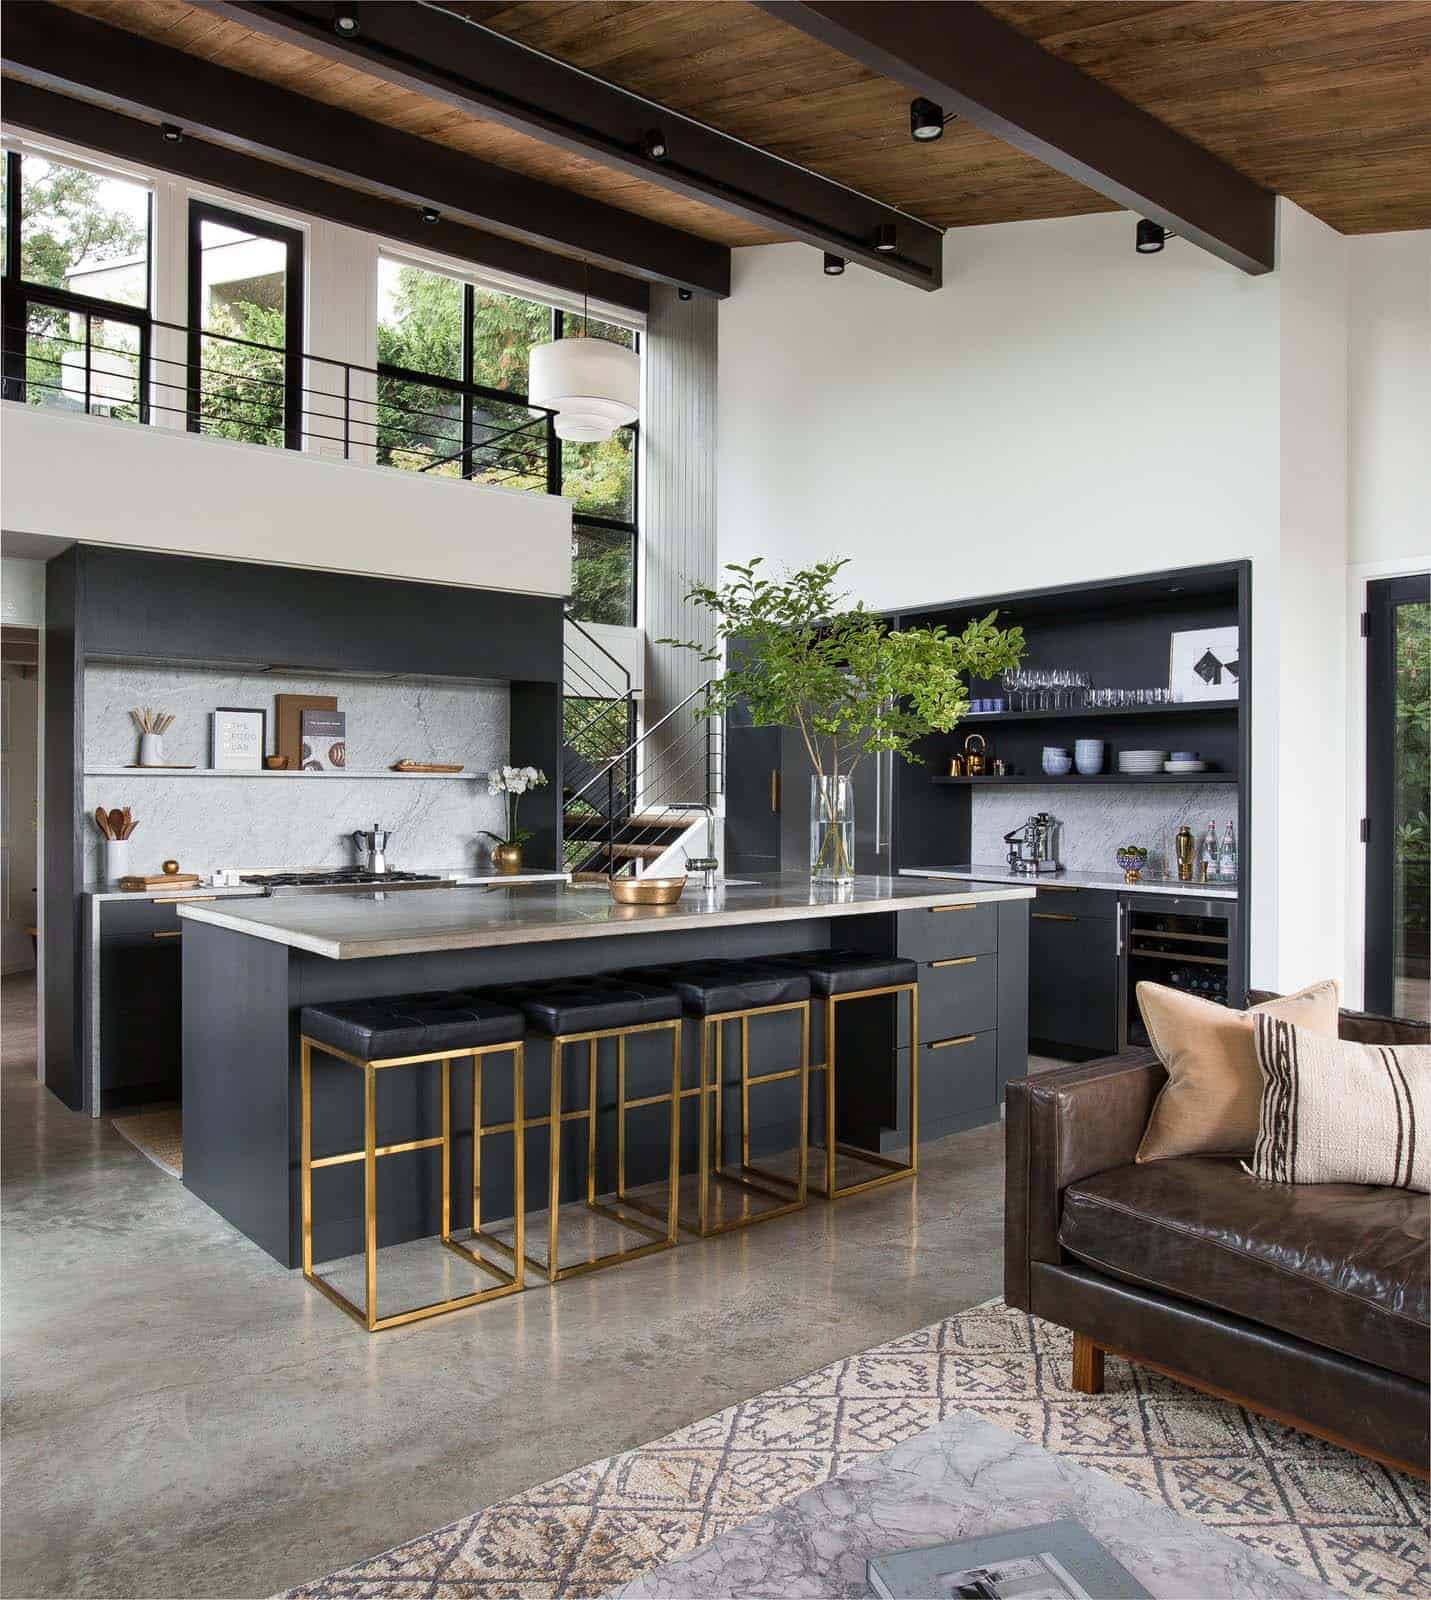 Spectacular Kitchen Family Room Renovation In Leesburg: Chic Midcentury Modern Renovation Surrounded By Woods In